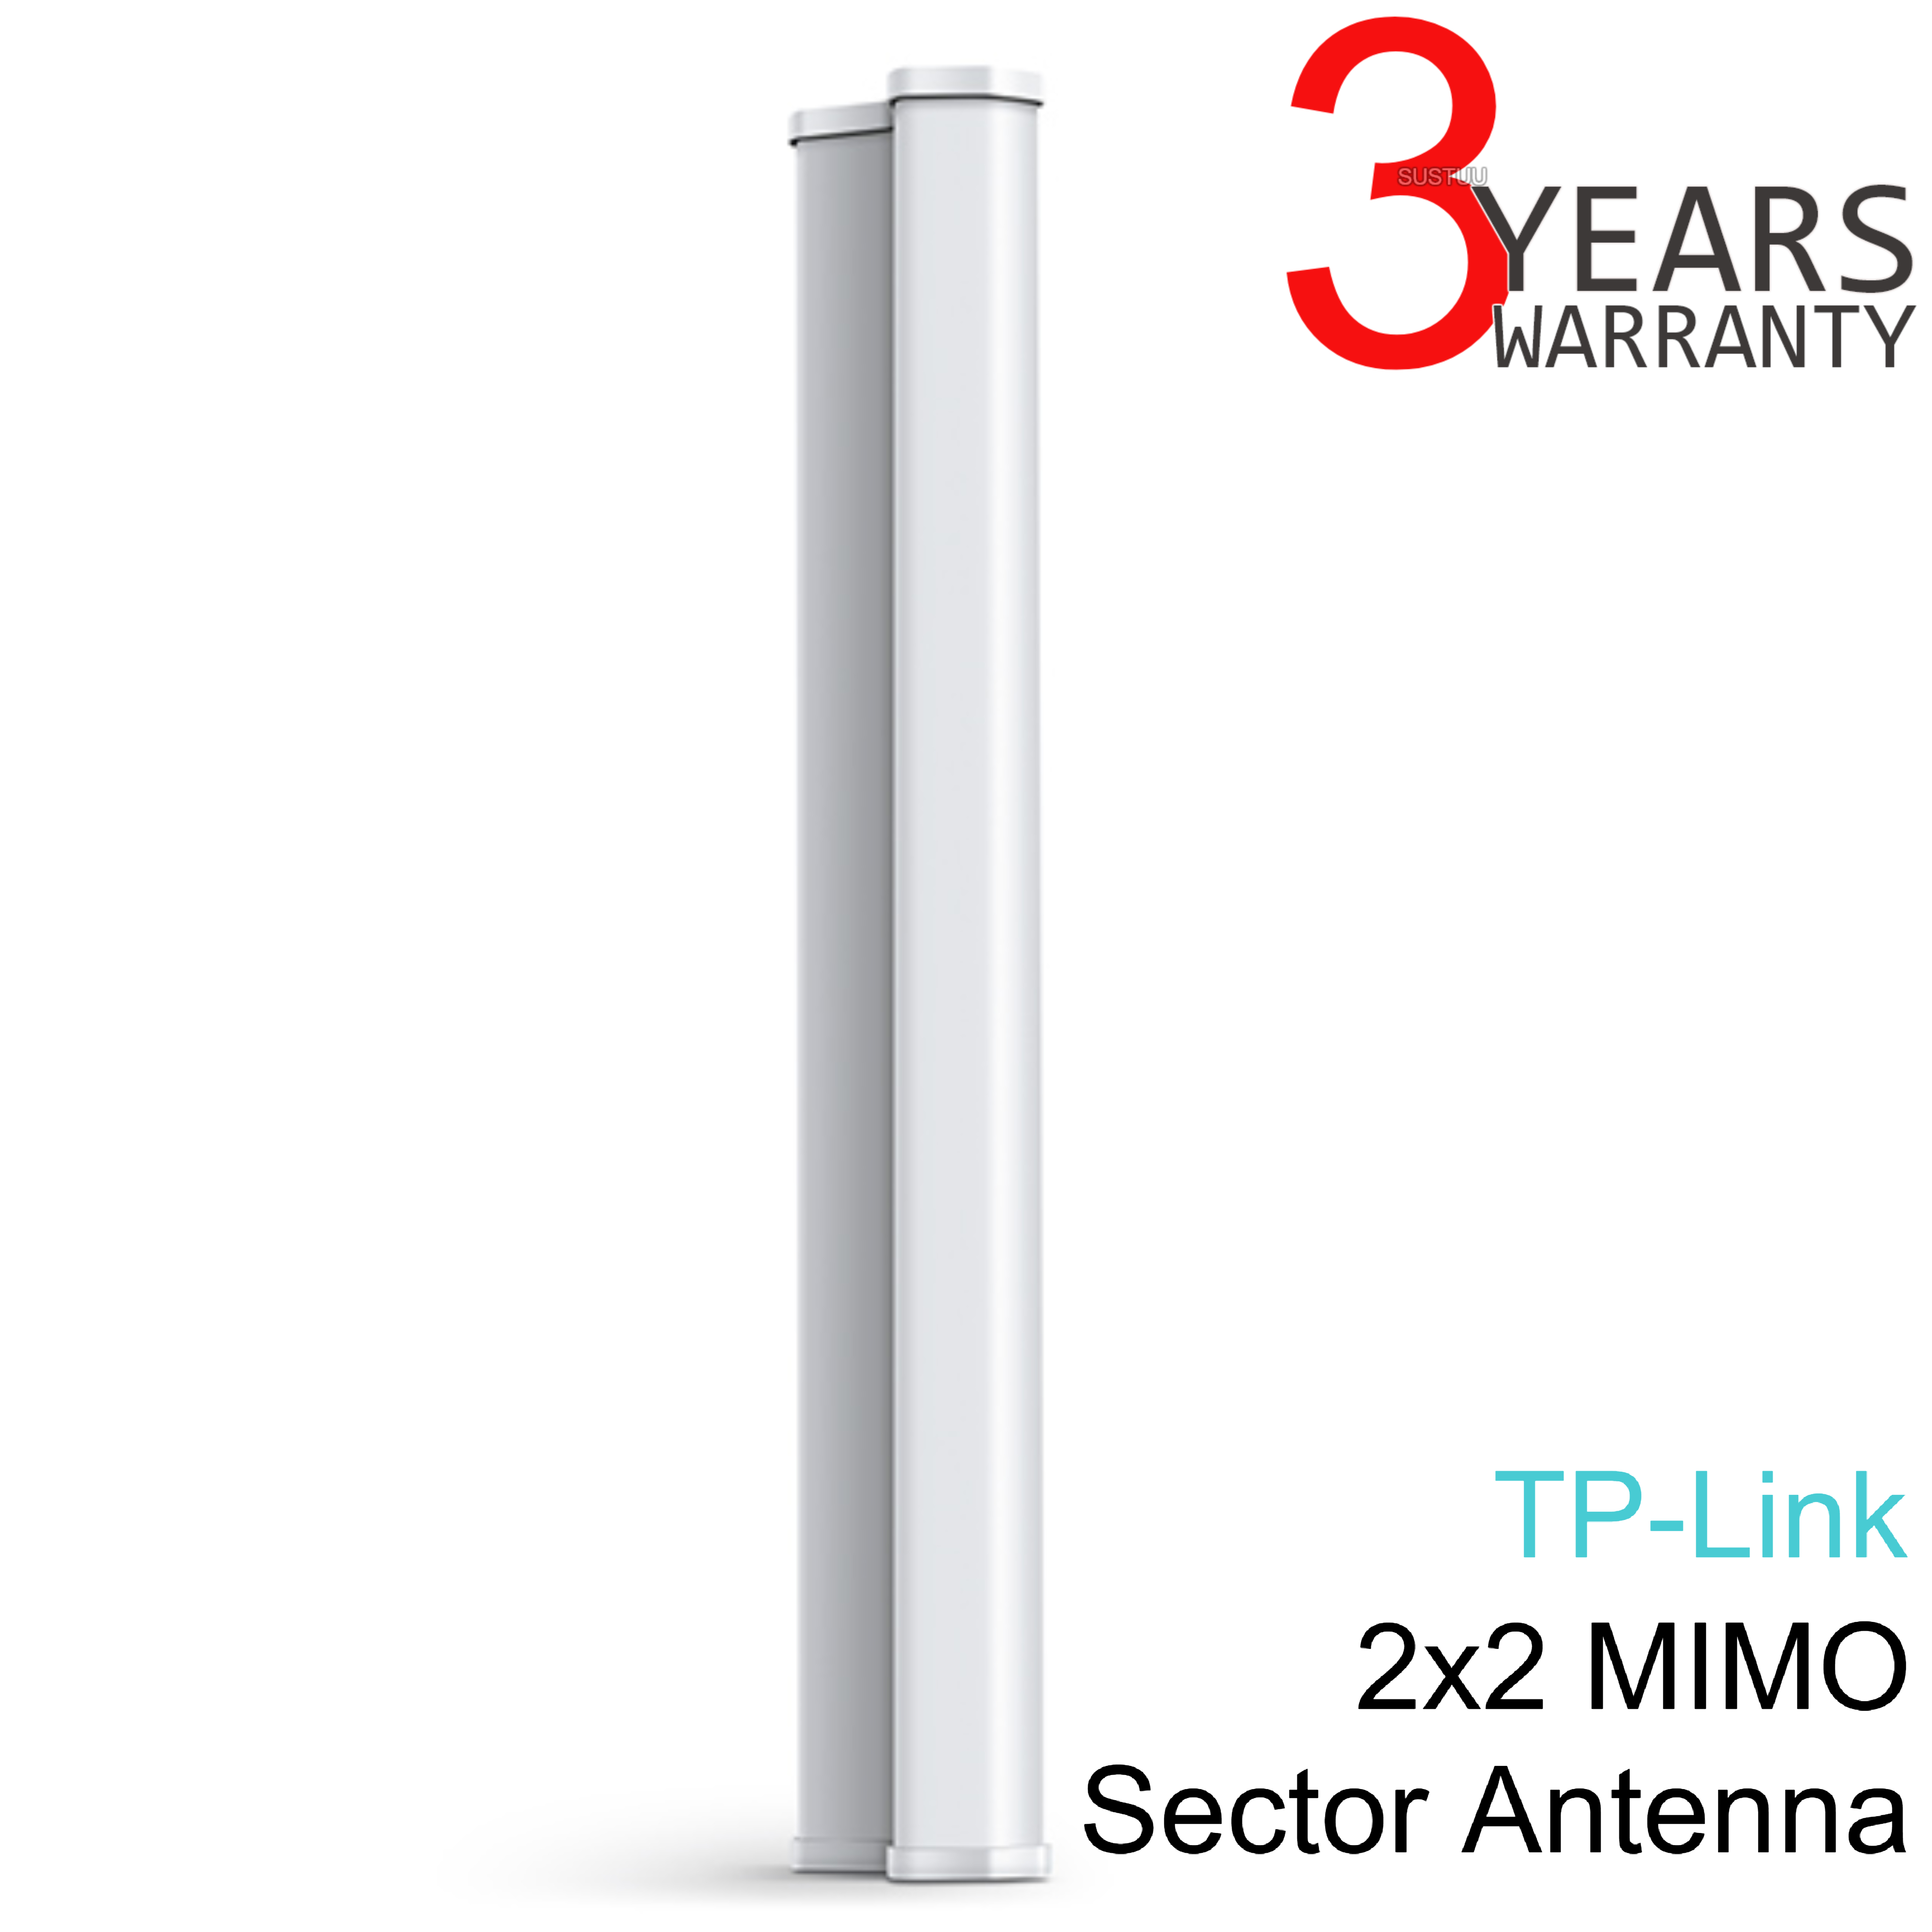 TP-Link TL-ANT5819MS|5GHz 19dBi 2x2 MIMO Sector Antenna|Weatherproof Design